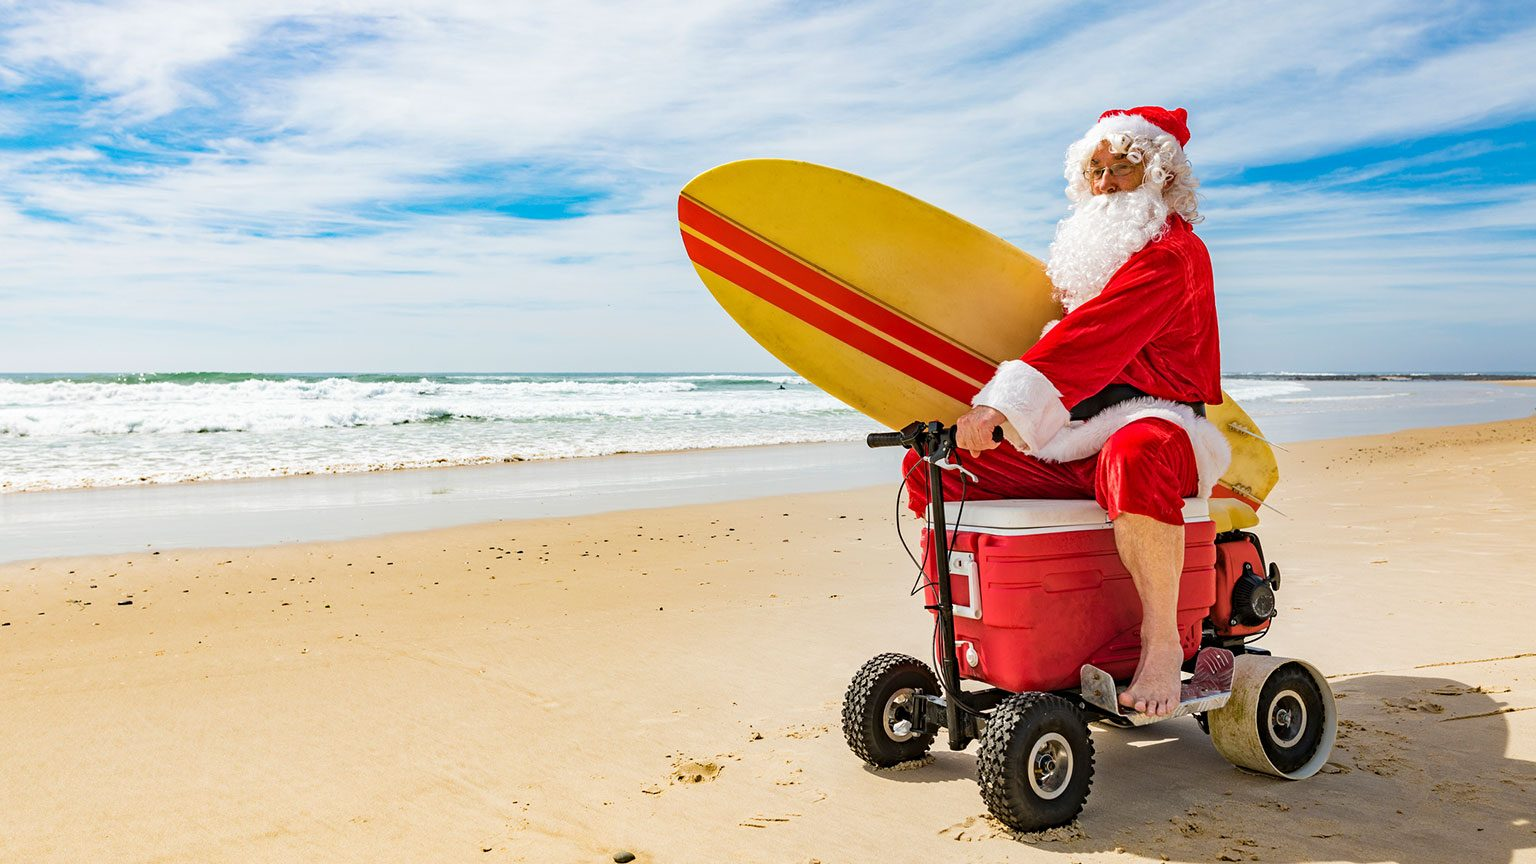 Santa Claus riding motorized cooler holding surfboard on beach